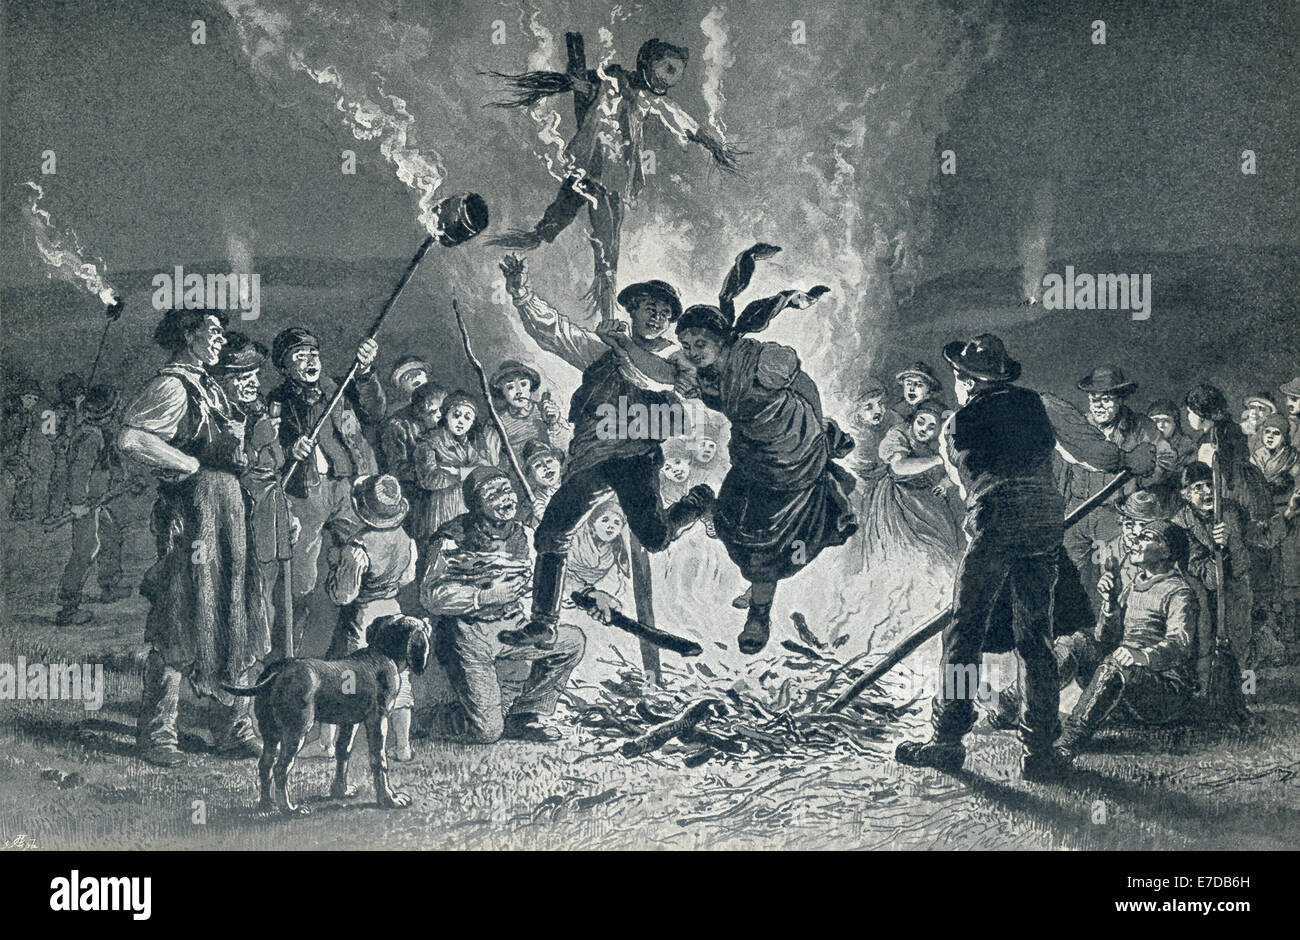 This 19th century illustration shows a Bonfire in Midsummer in 1879.  Midsummer is also known as St. John's Day.